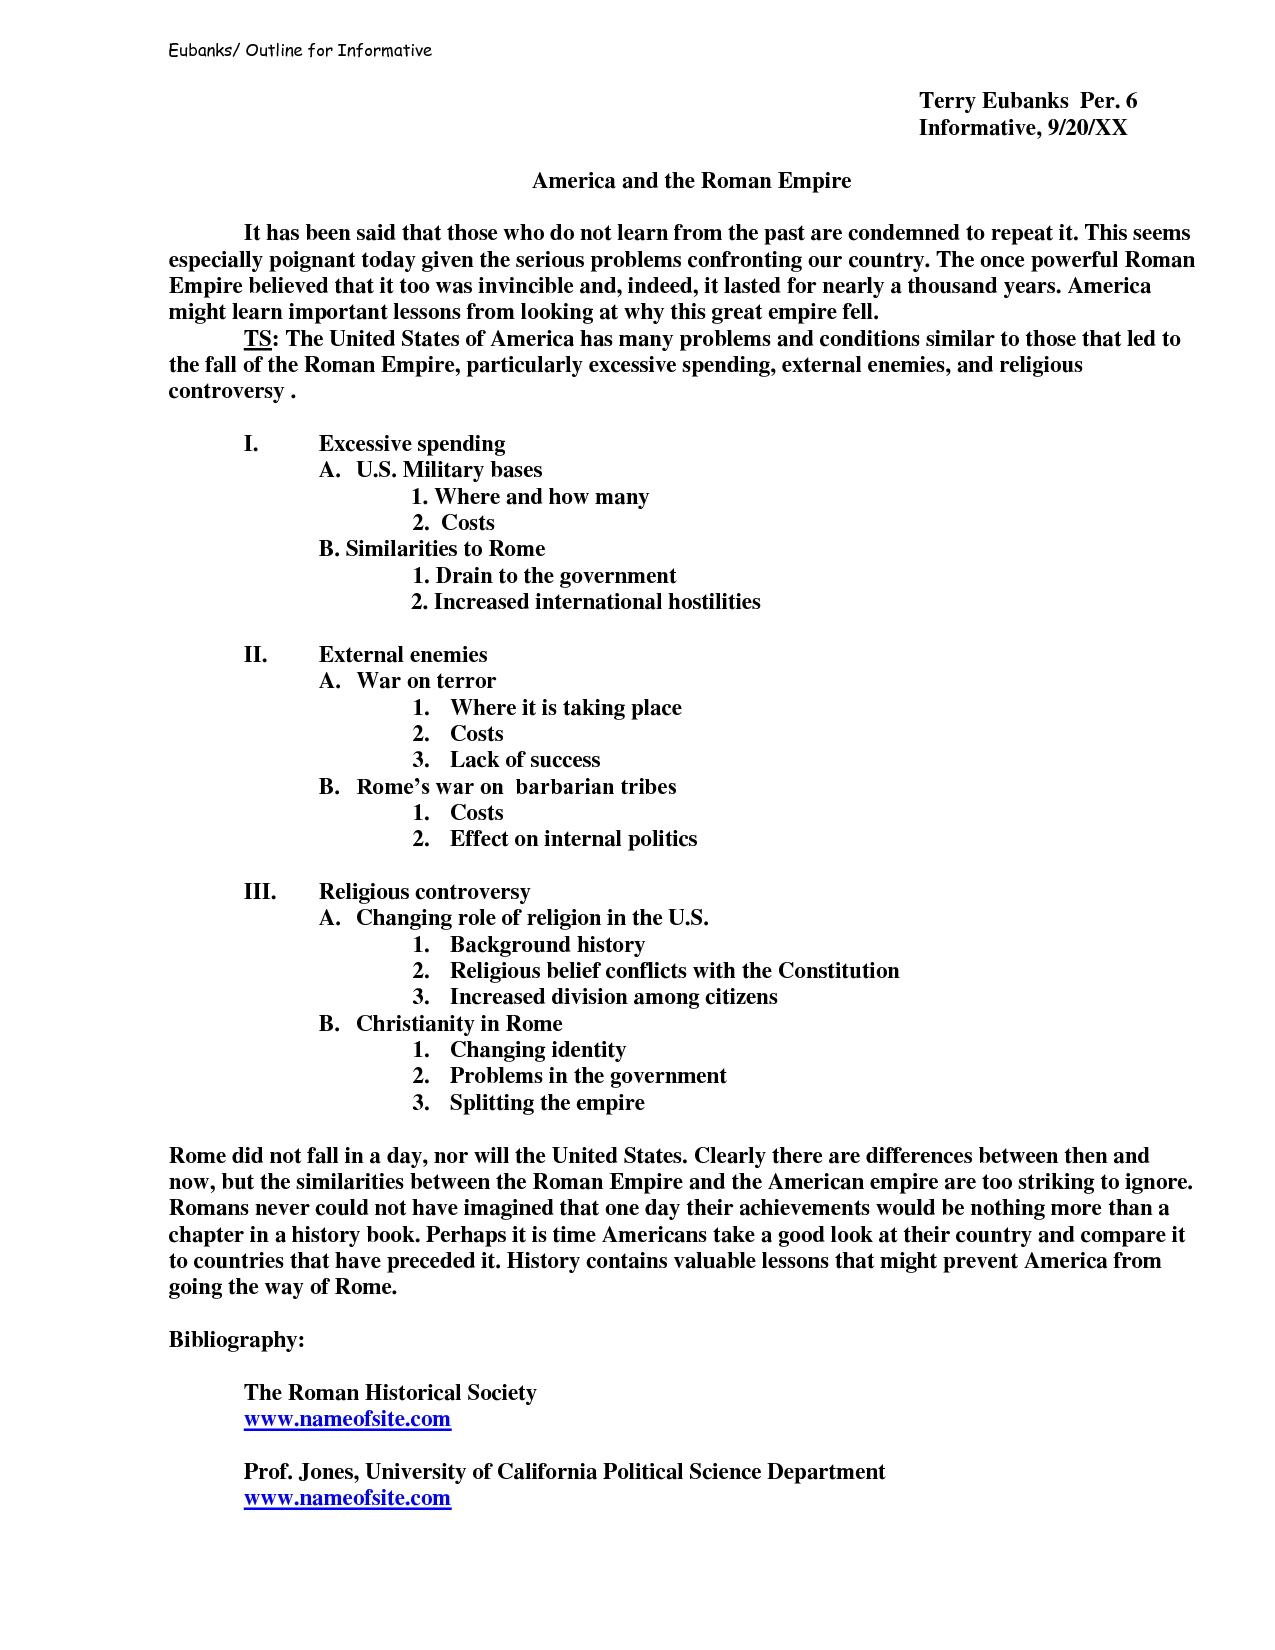 011 Essay Example Informative Speech Outline Template 4tvkvfcf An For Remarkable Should After Creating A Student Brainly The Include Quizlet Full